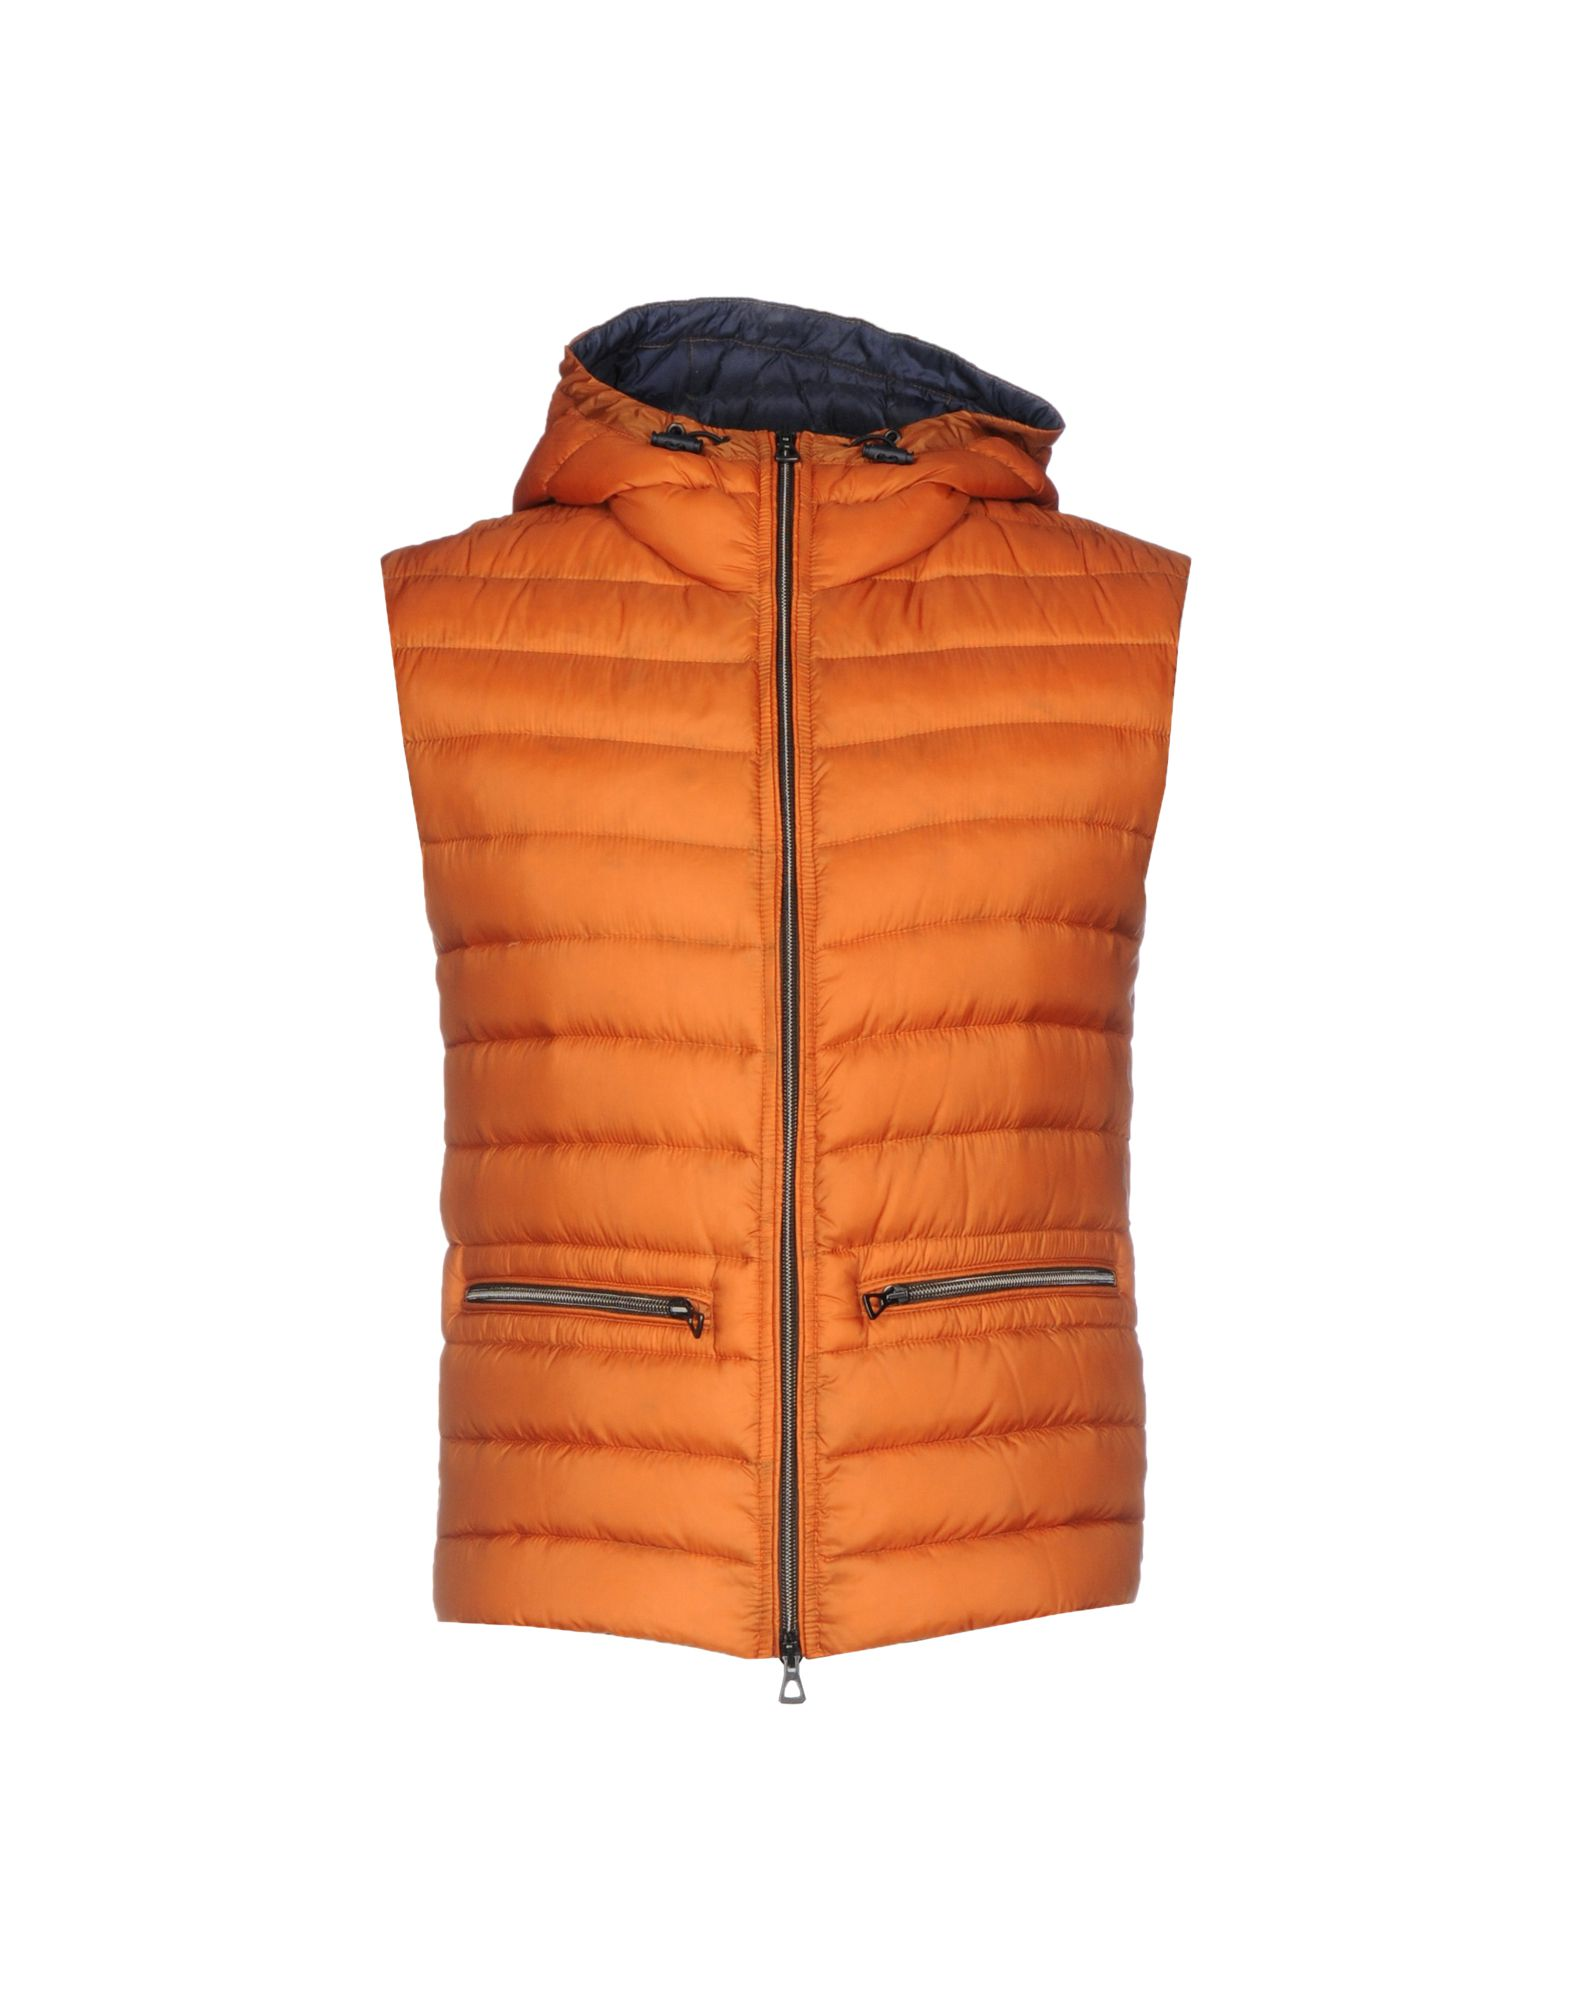 Gilet Historic Uomo - Acquista online su